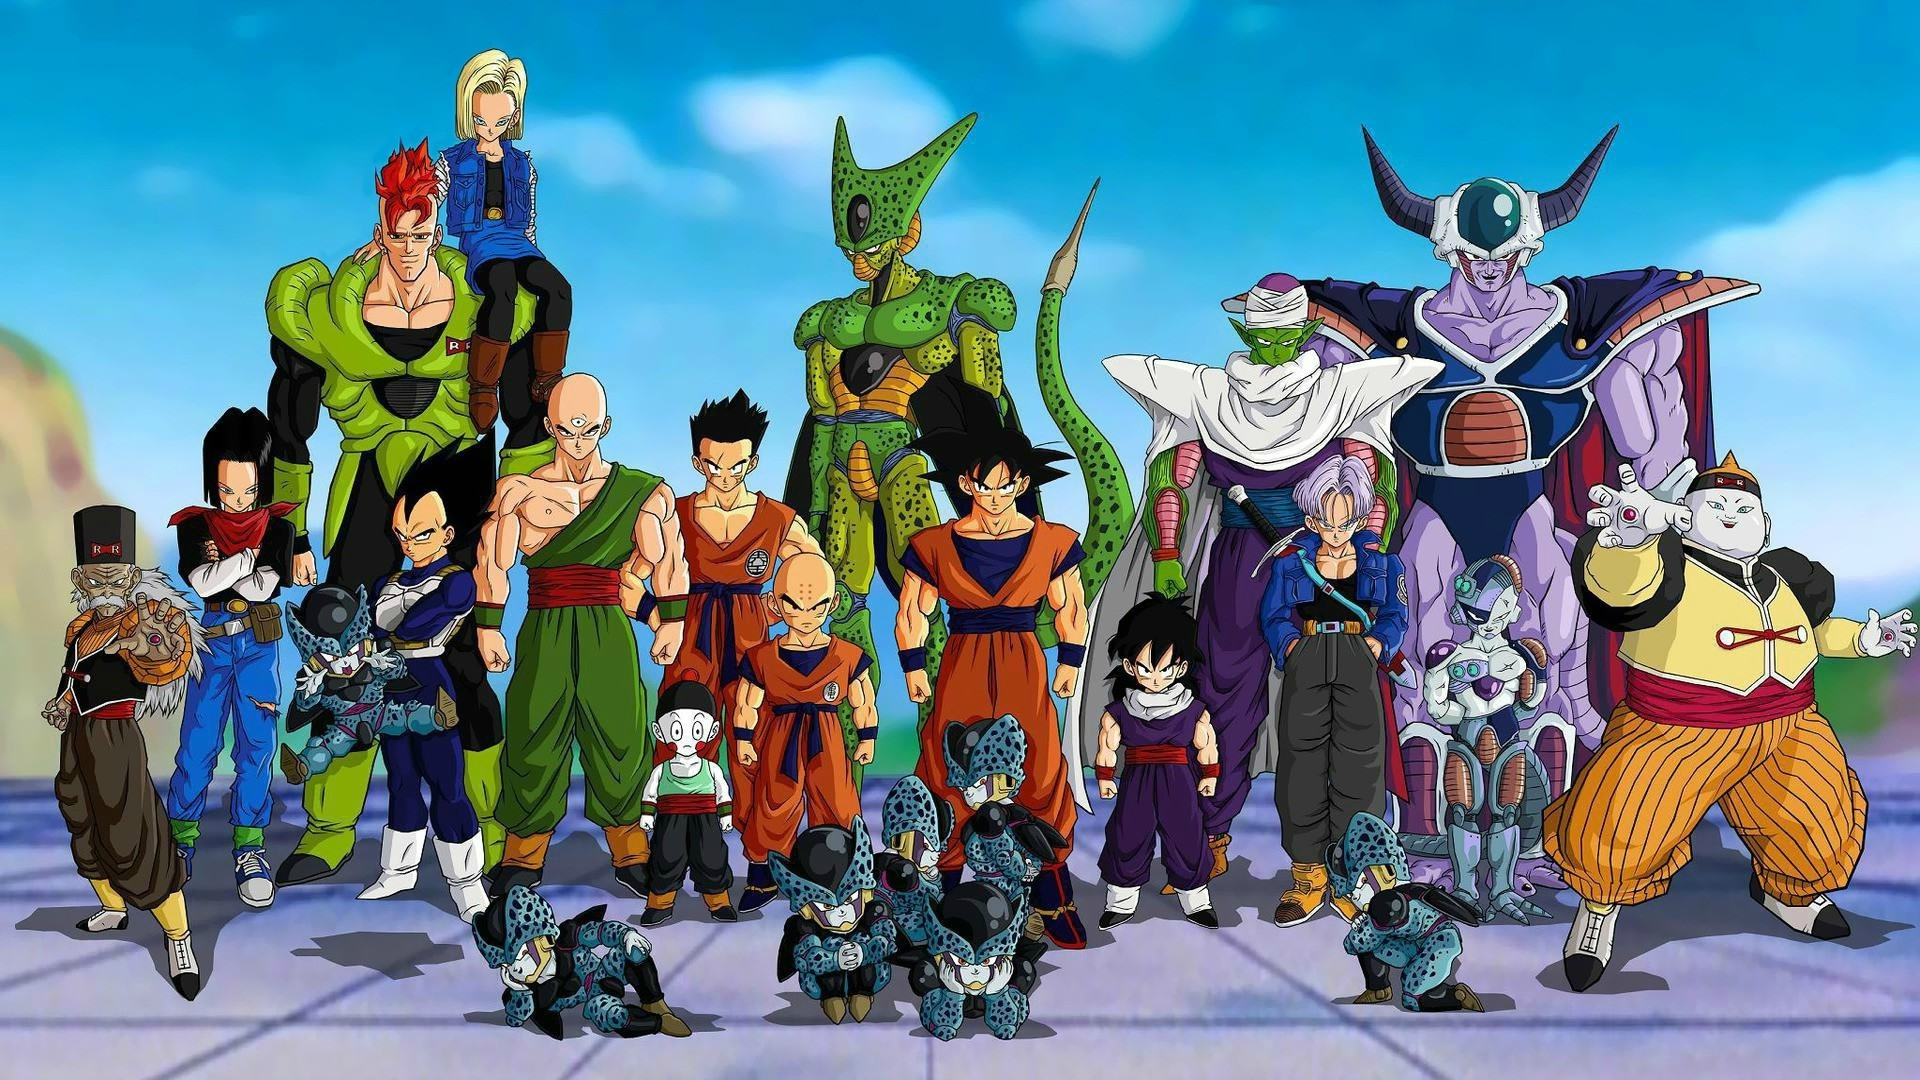 Krillin Android 17 Android 18 Tien Shinhan Dr Dragon Ball Z